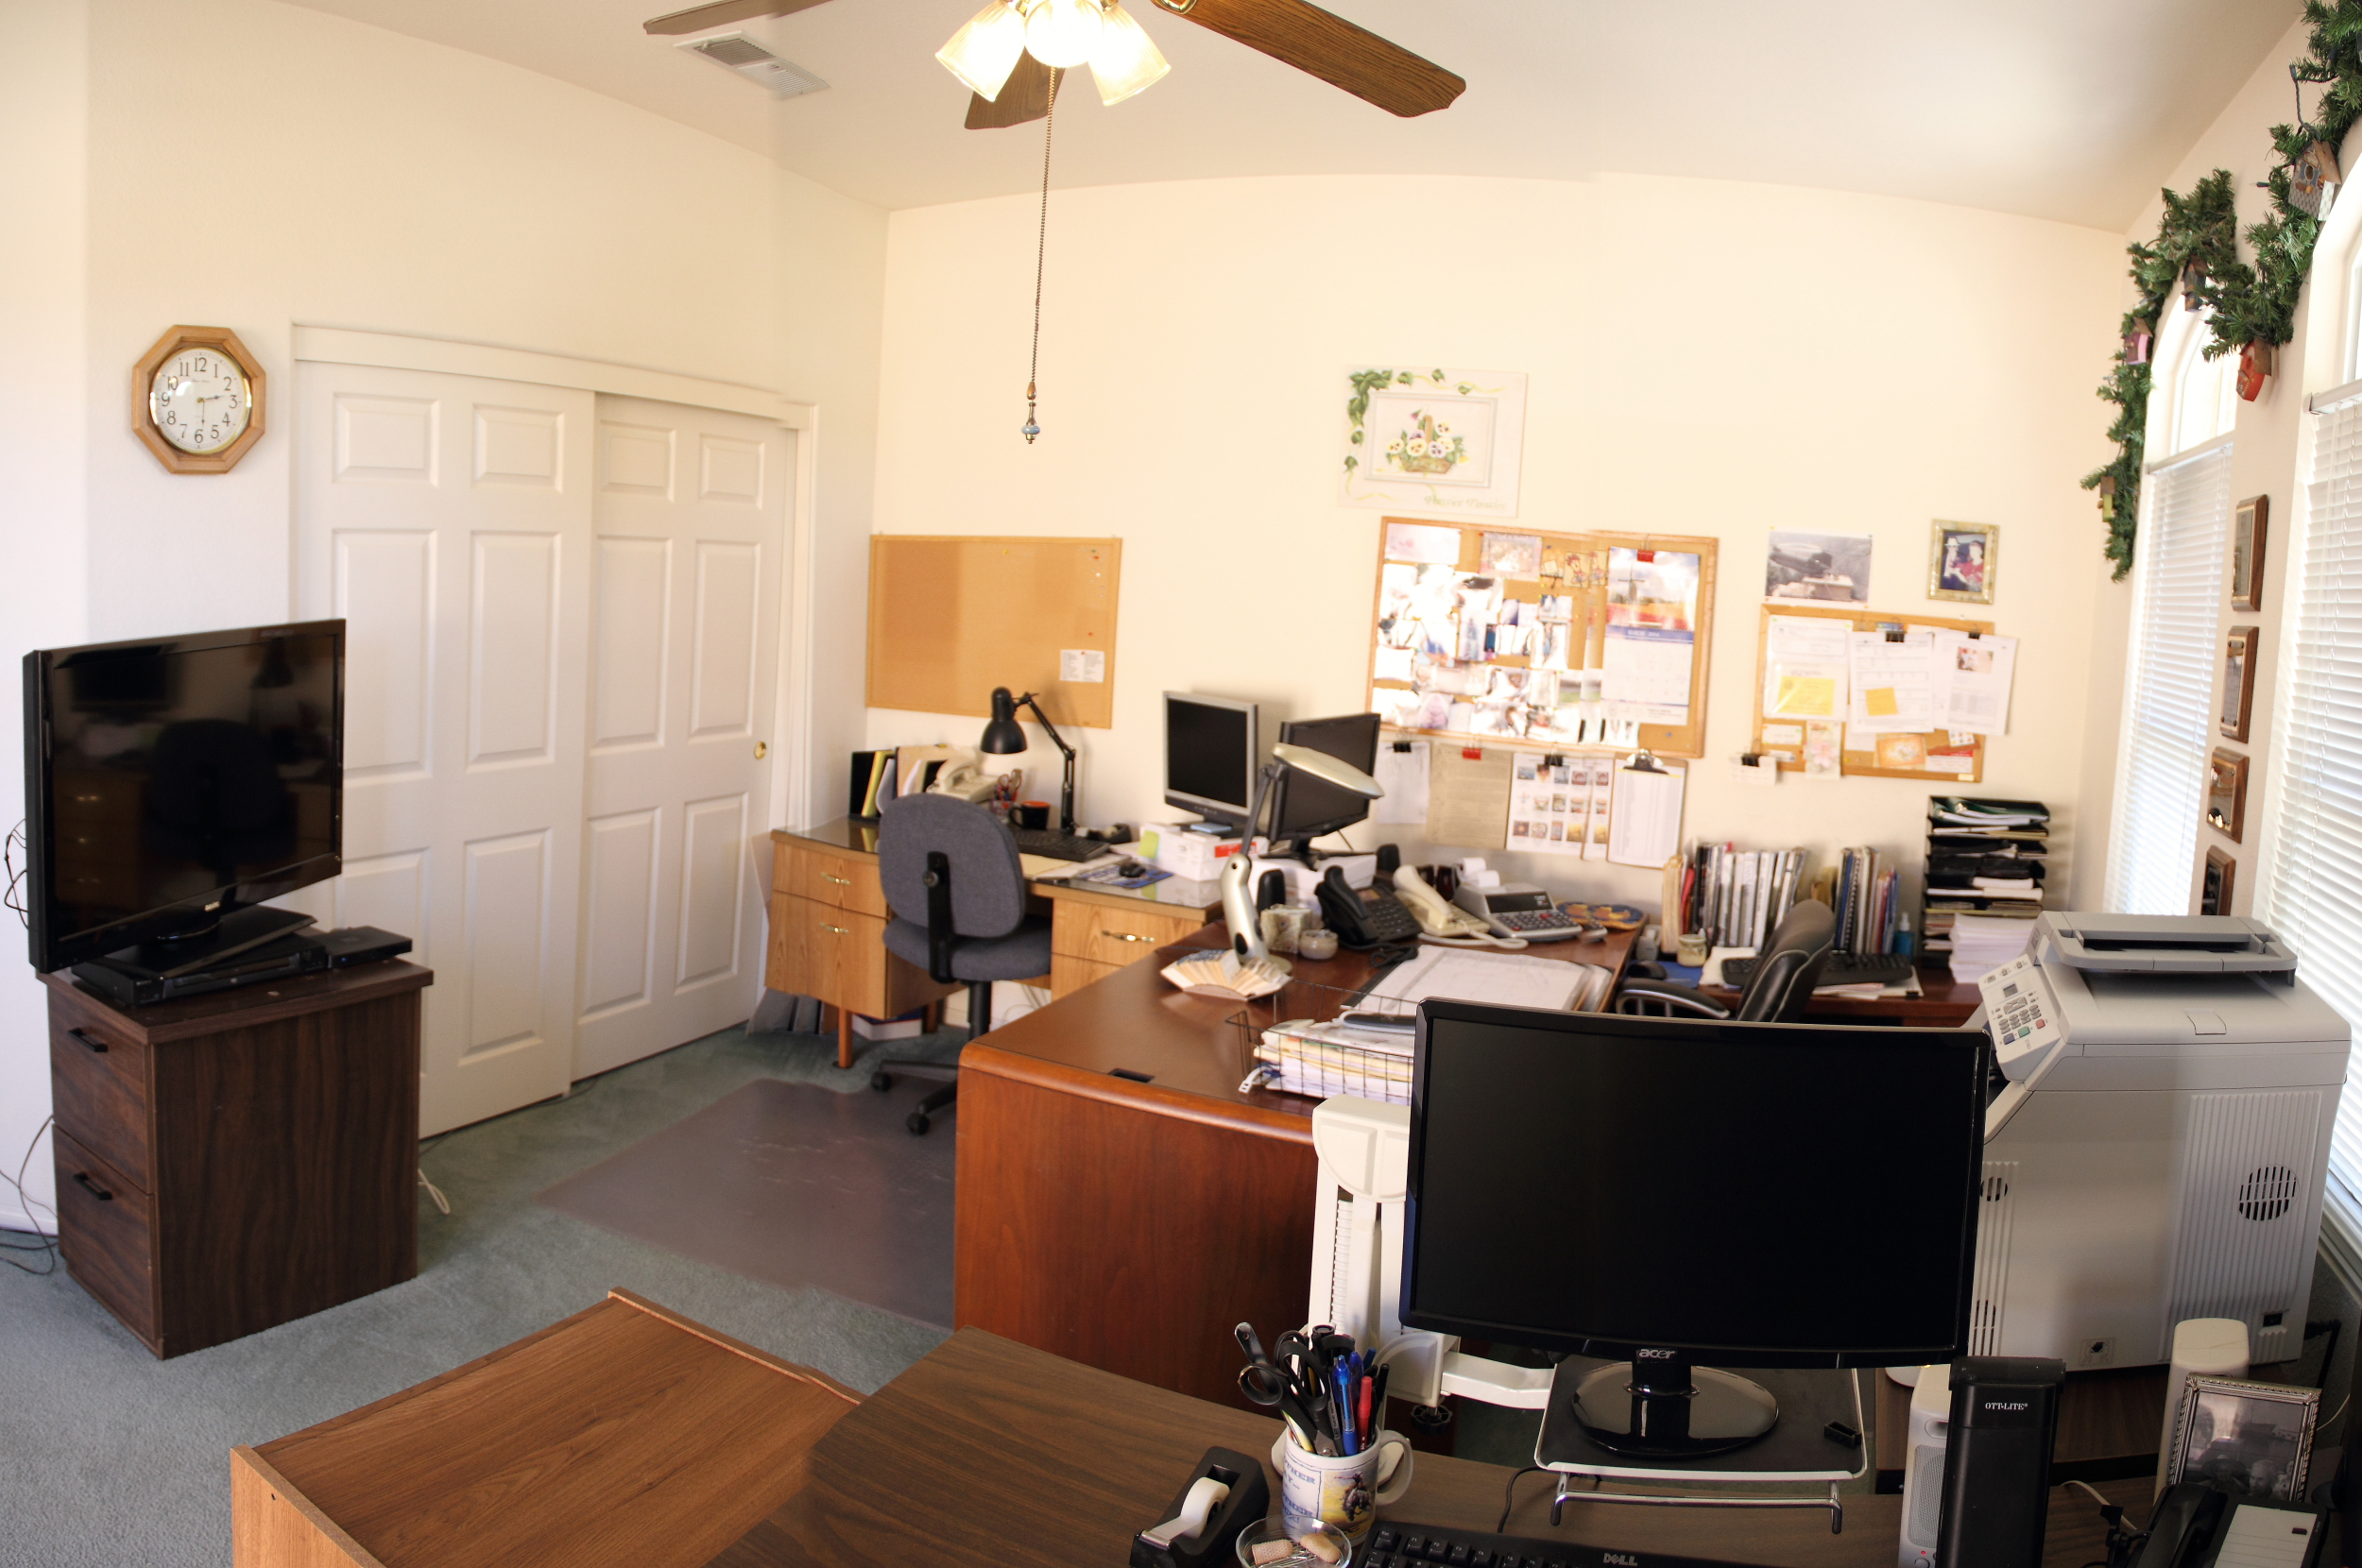 Fourth bedroom is used as an office.